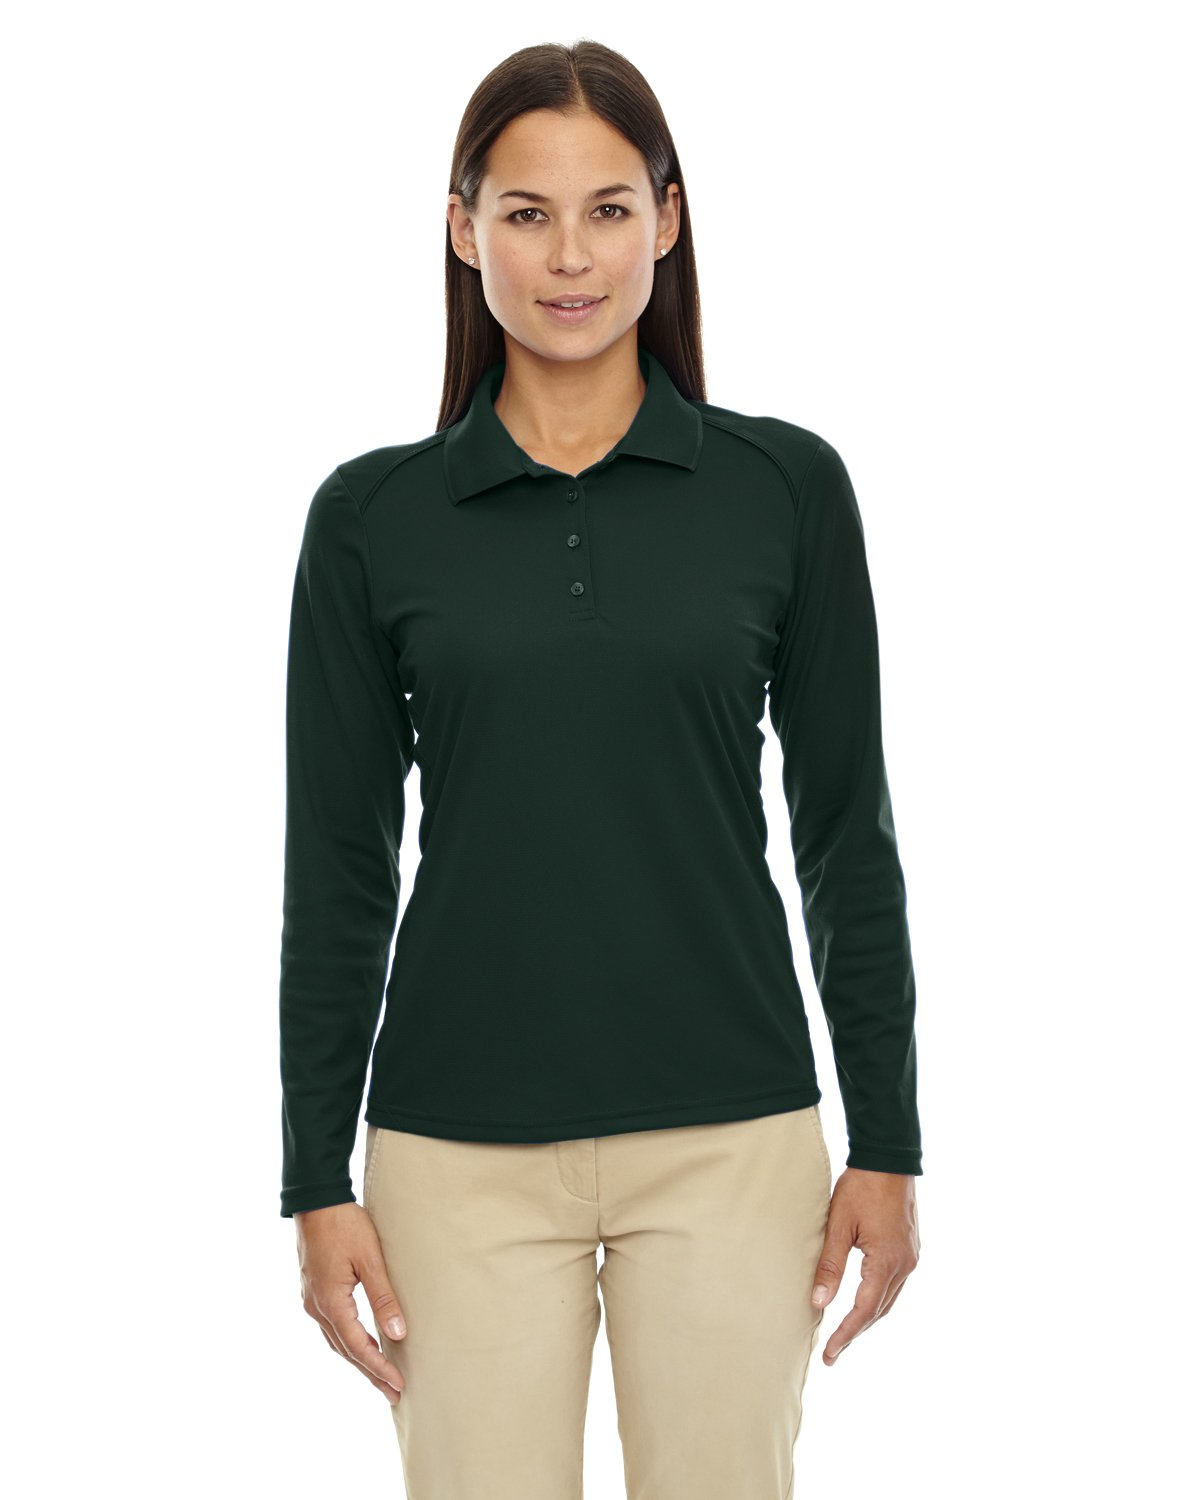 Ash City Ladies Armour Long Sleeve Polo (Small, Forest) by Ash City Apparel